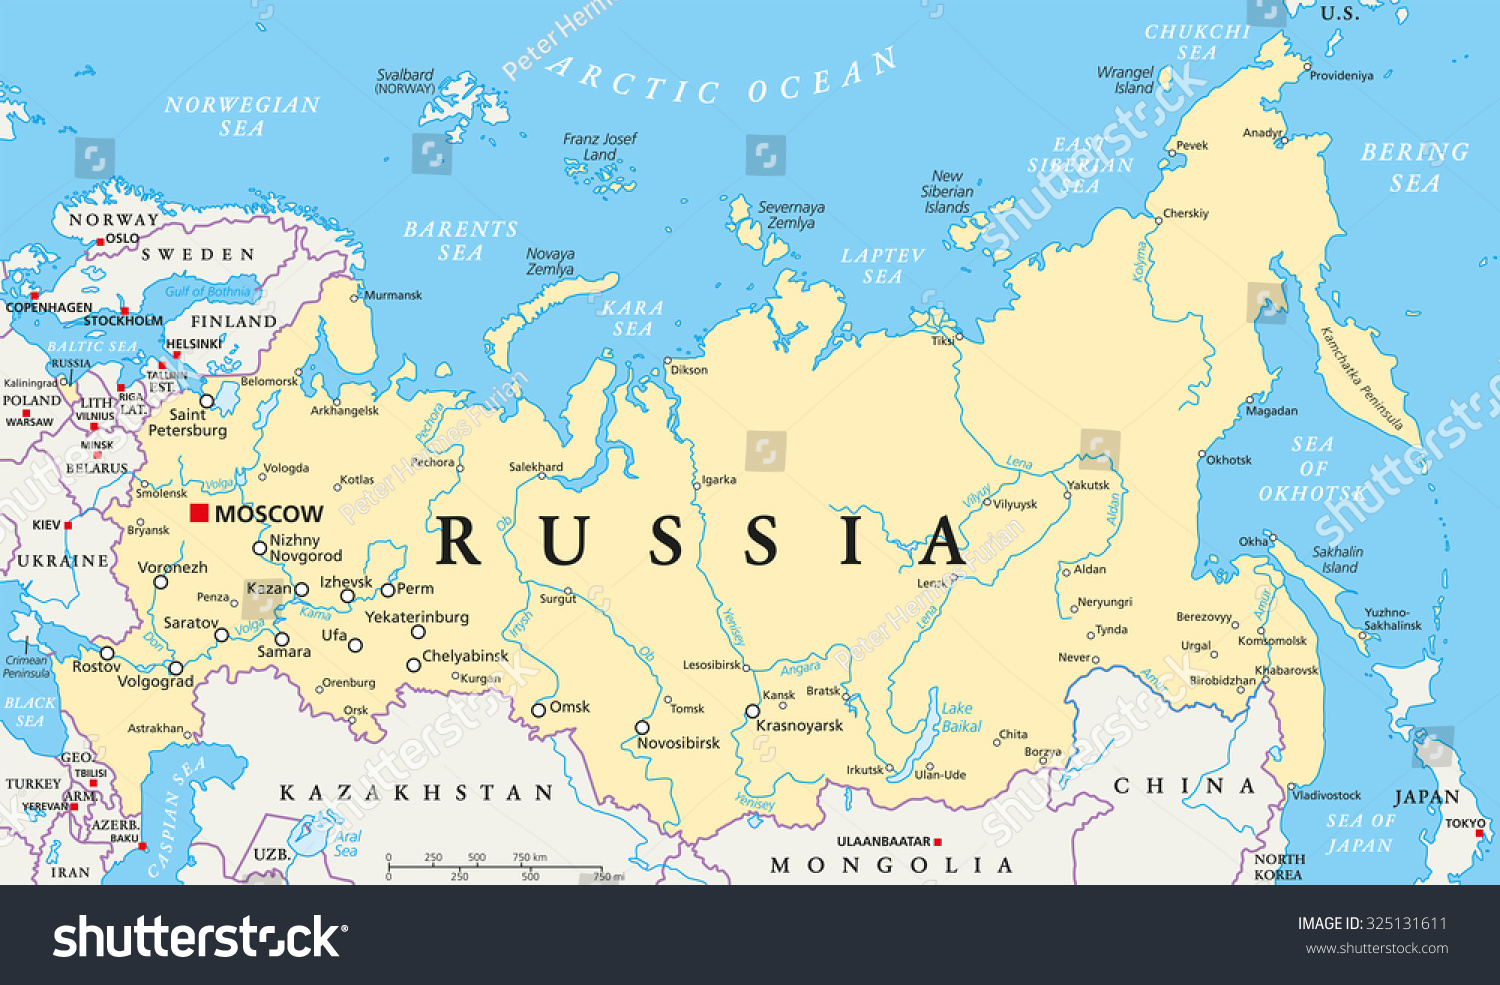 Russia political map with capital Moscow national